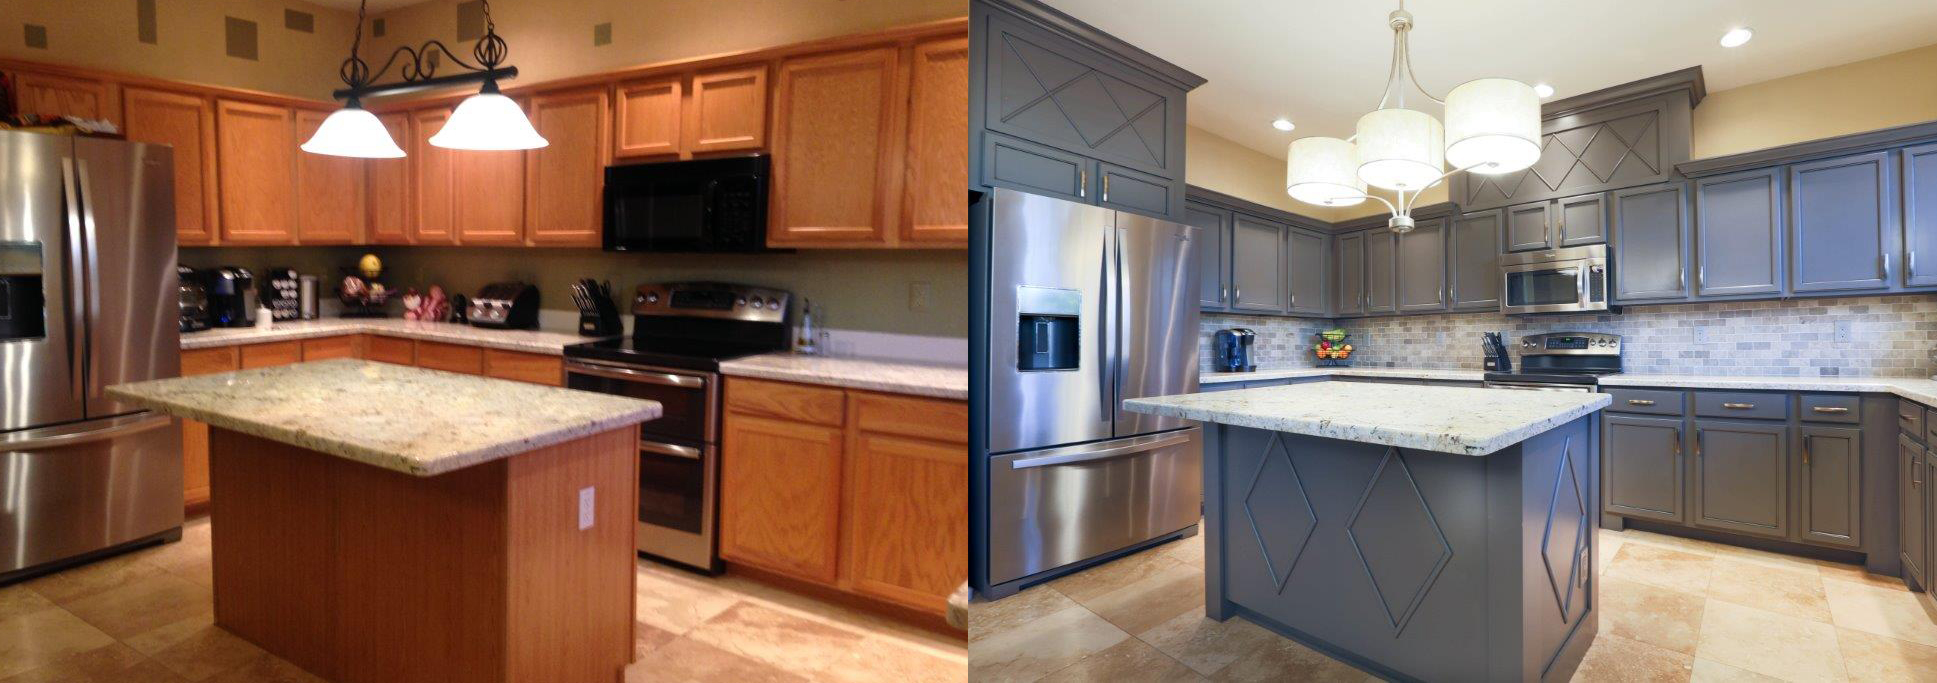 Arizona Kitchen Cabinets Cabinet Refinishing Phoenix Az & Tempe Arizona  Kitchens Bathrooms